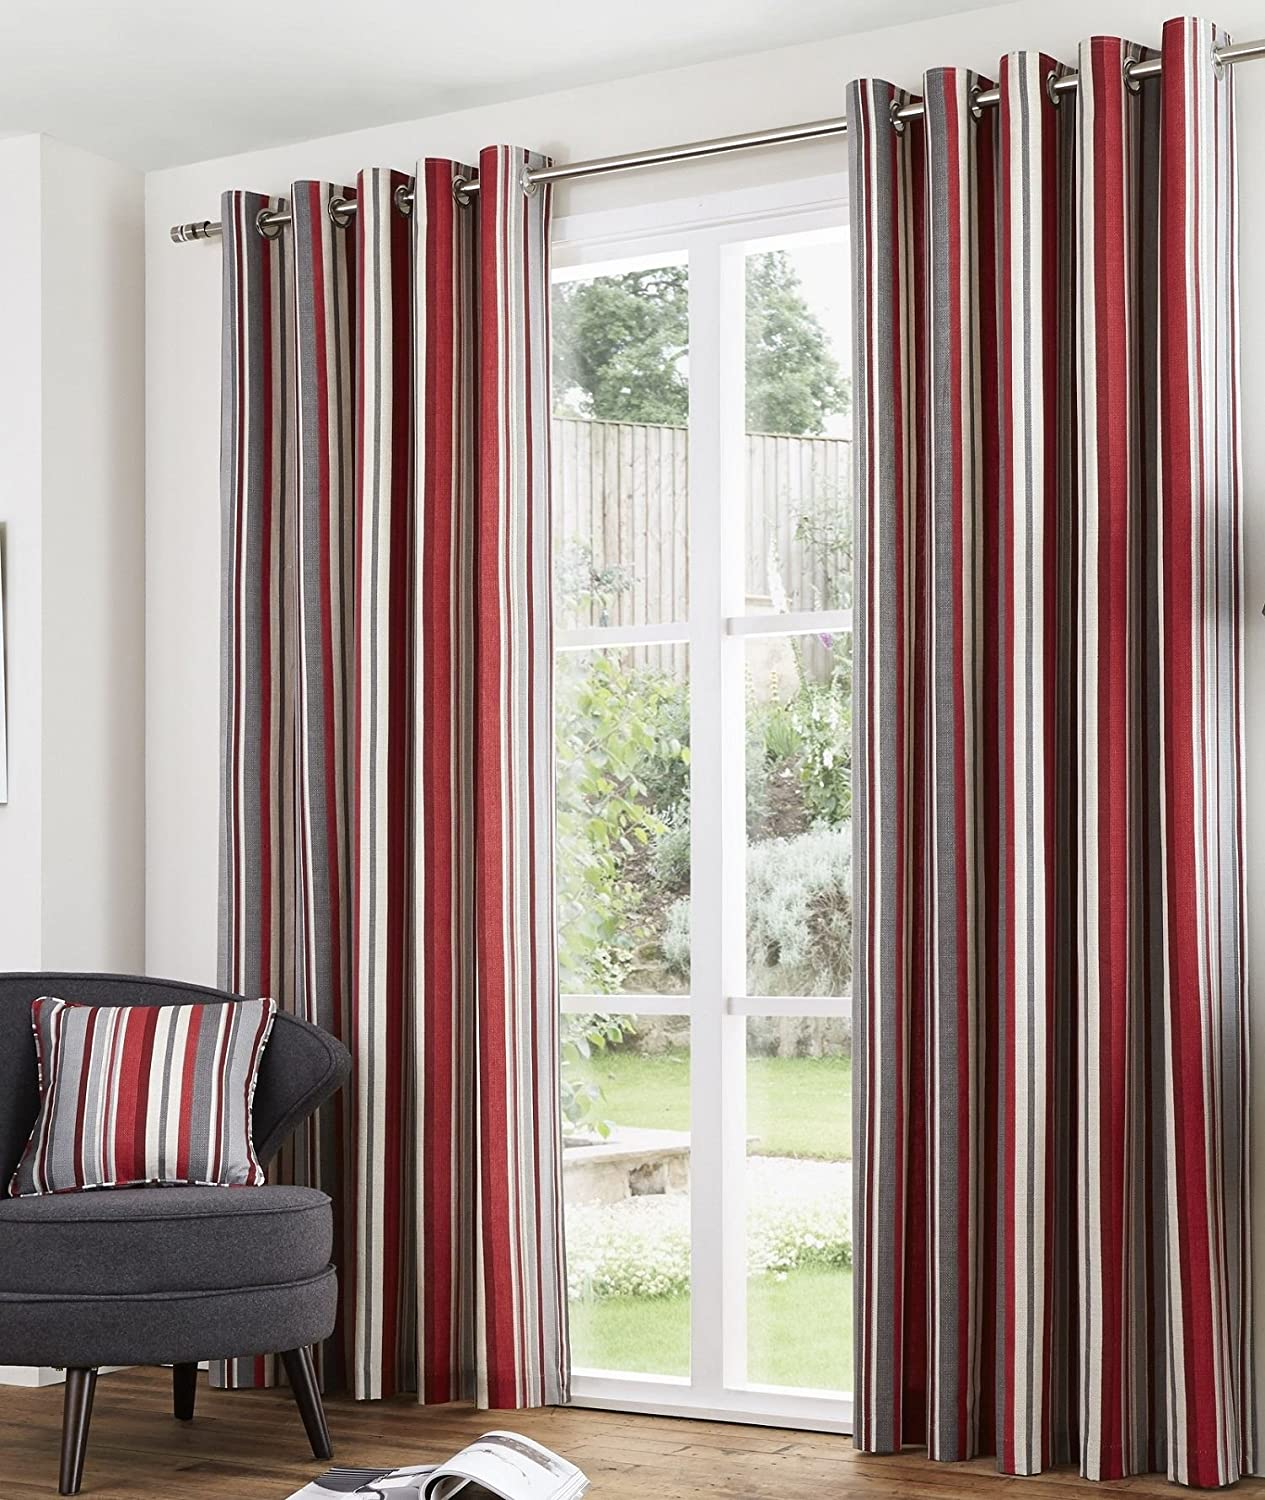 Melody Eyelet Lined Curtains 66 X 54 Stripe Red Burgundy Cream Grey Ready Made Pair Woven Cotton Hallways R Amazoncouk Kitchen Home